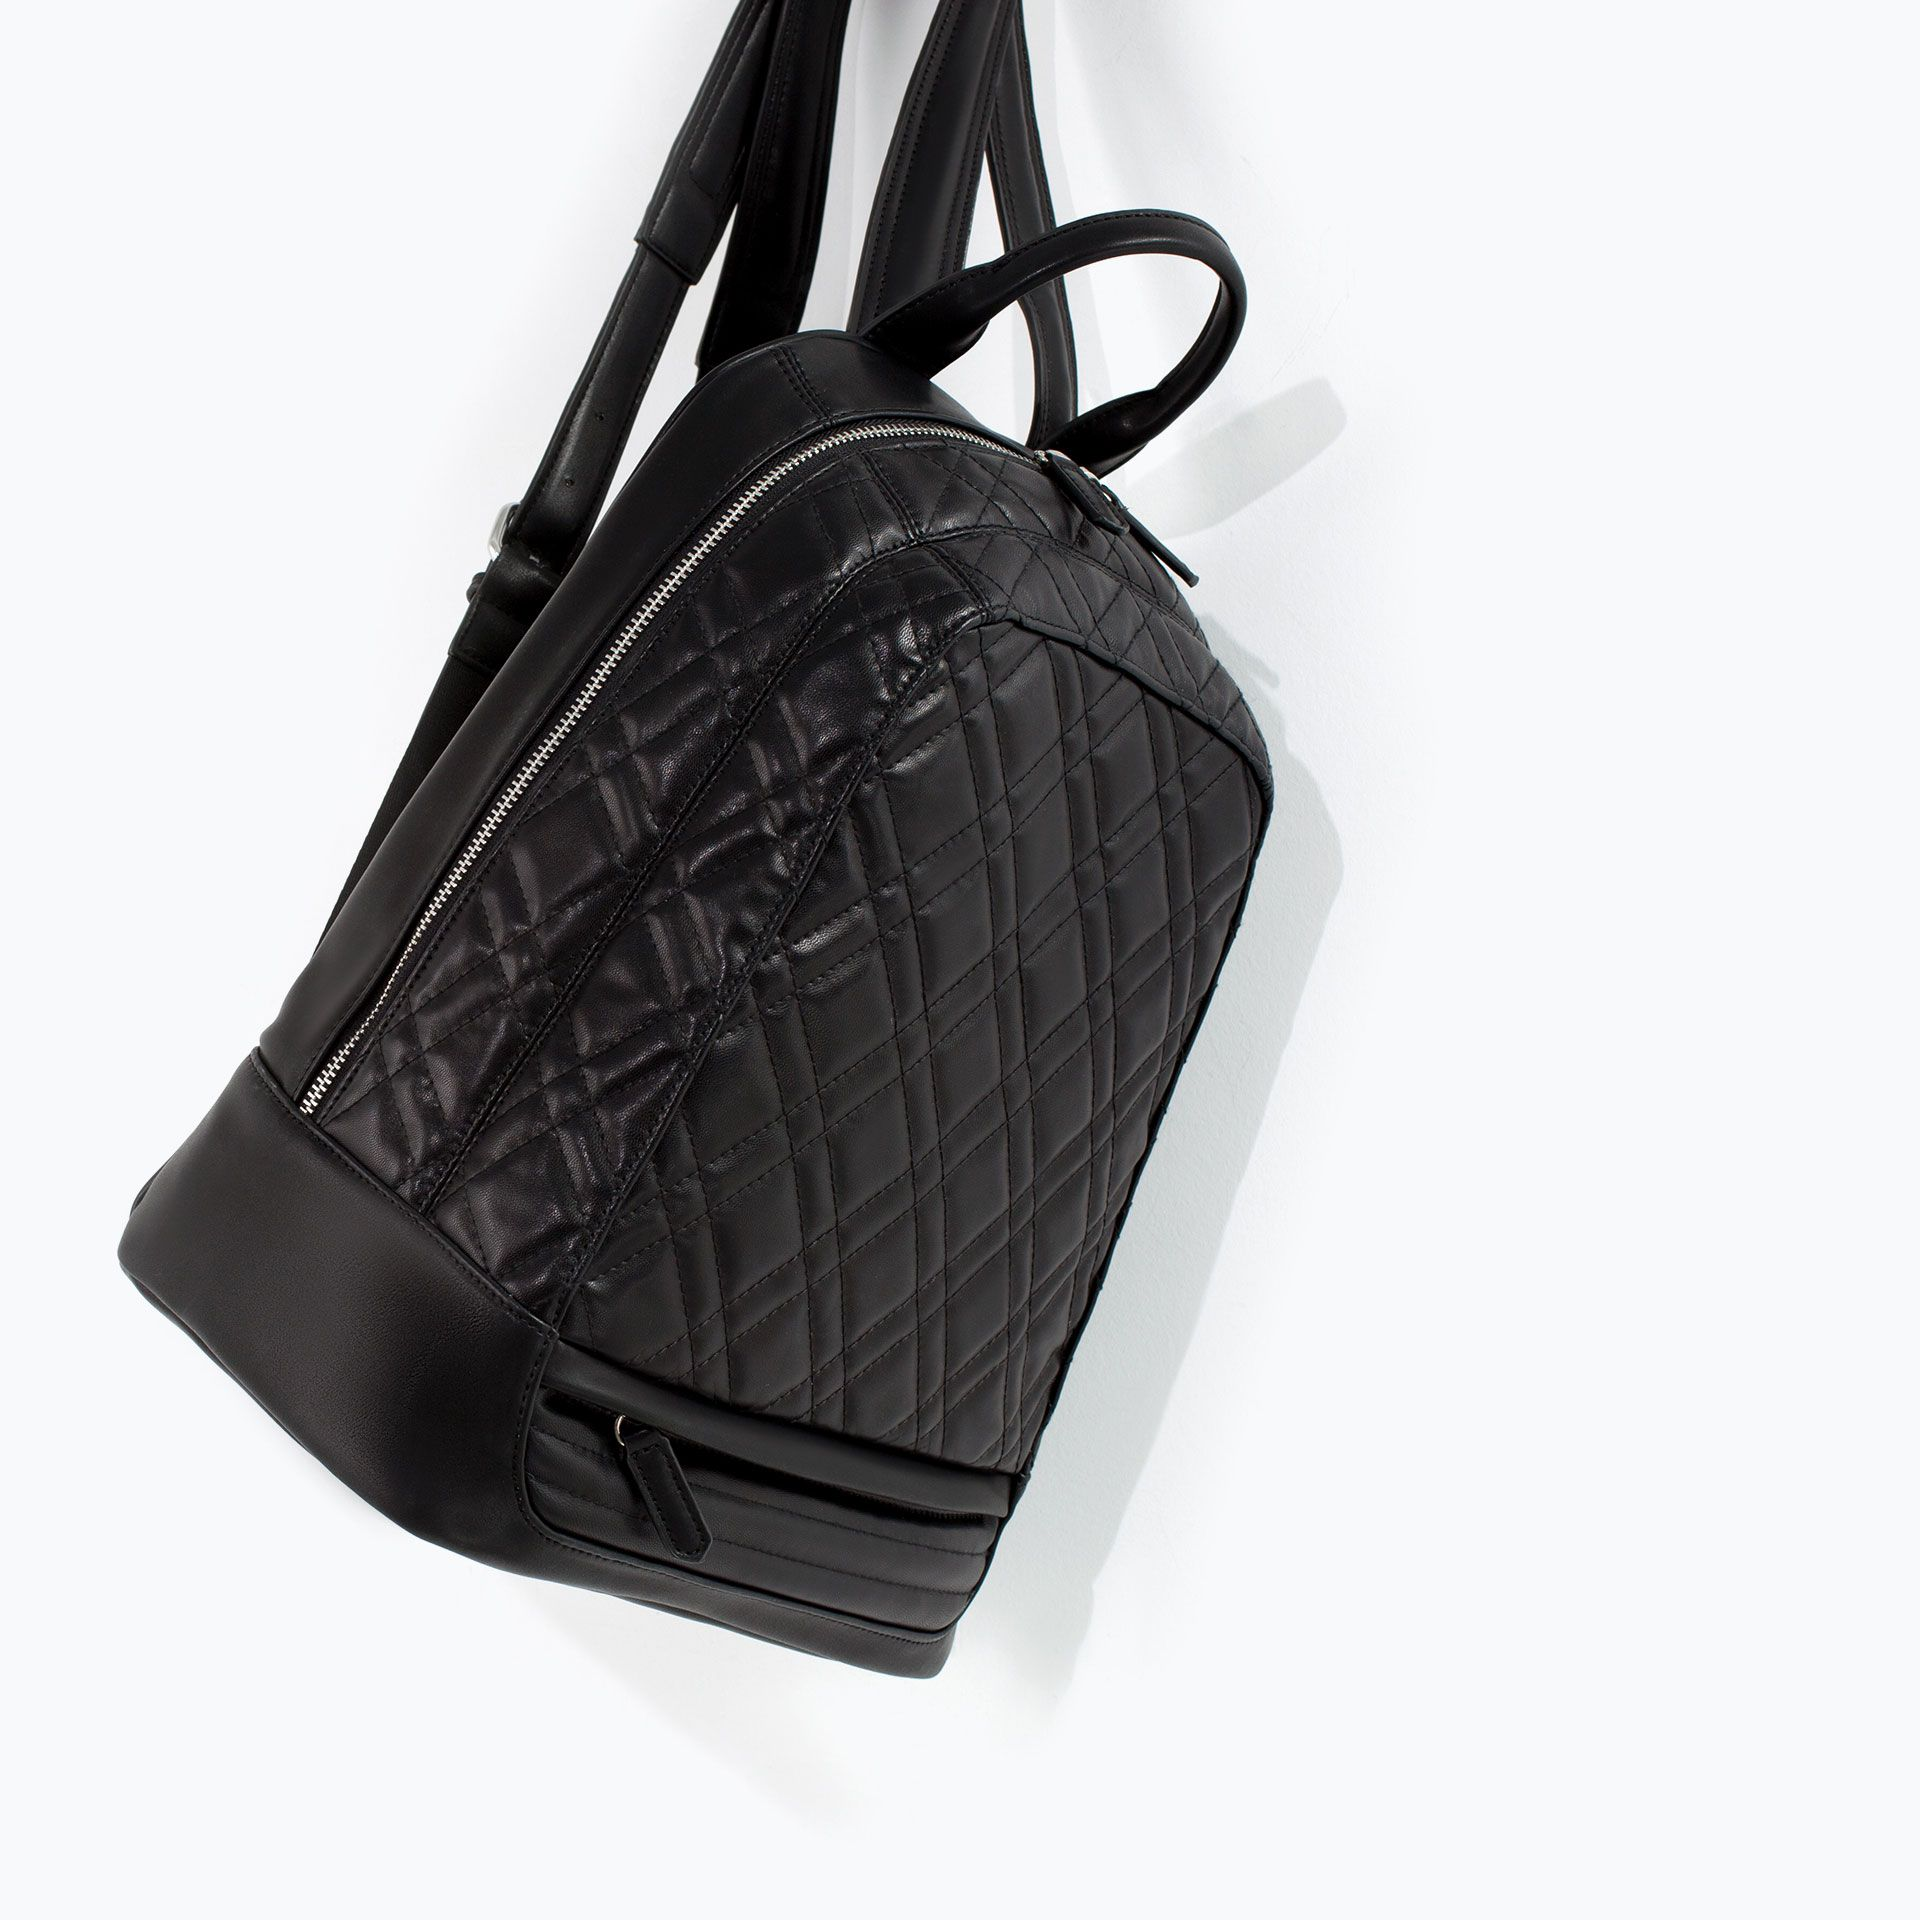 QUILTED RUCKSACK from Zara   Bags   Pinterest   Gloves, Purse and Bag : black quilted rucksack - Adamdwight.com